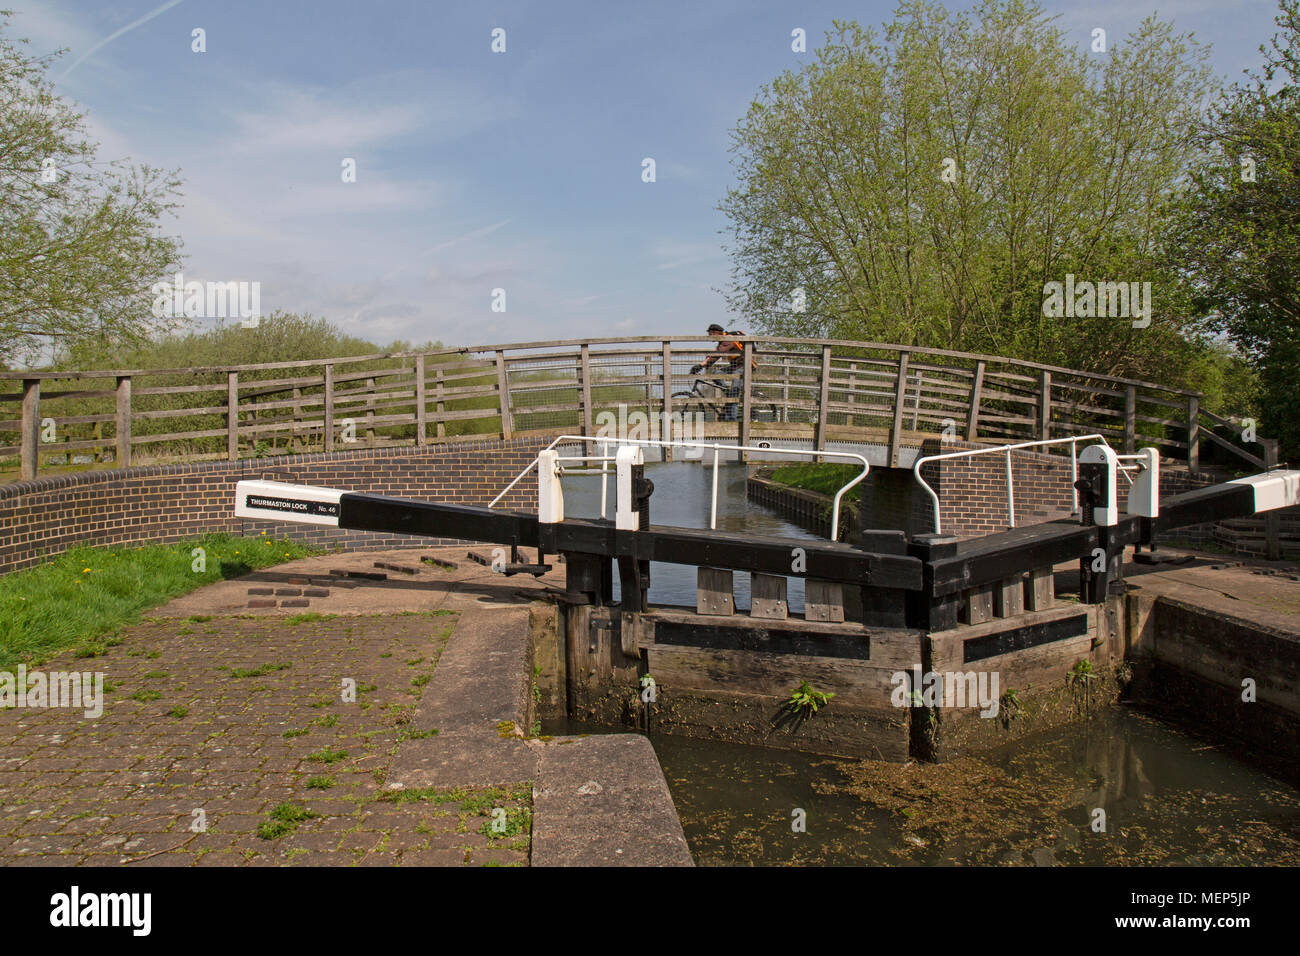 Watermead Country Park in Leicestershire, England. A cyclist crosses a bridge across a canal with lock gates in the foreground. - Stock Image